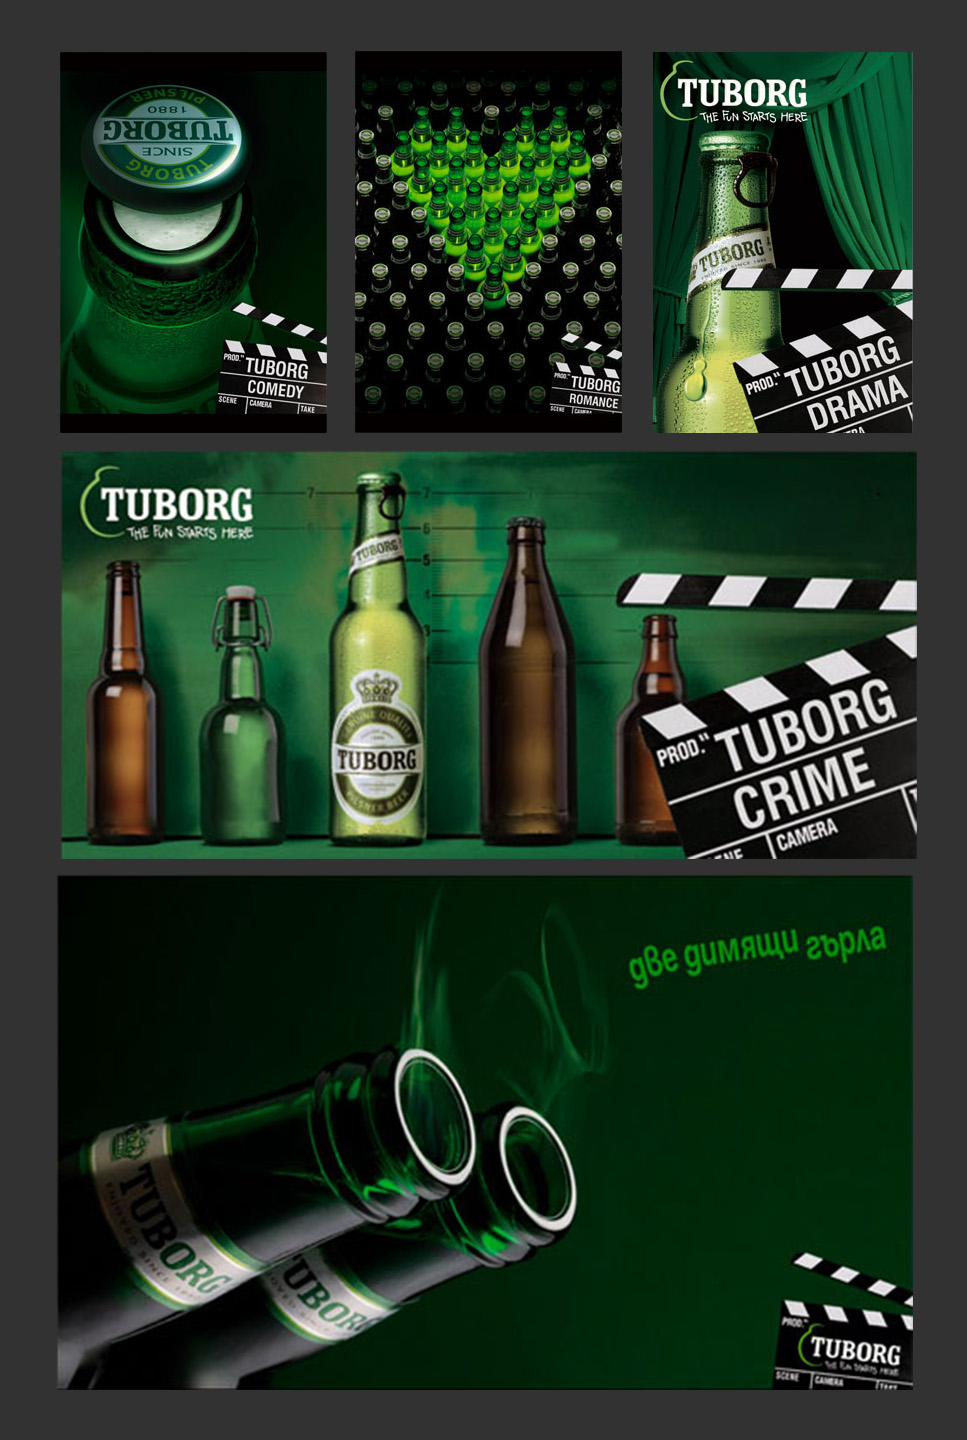 Tuborg Movie Add Campaign